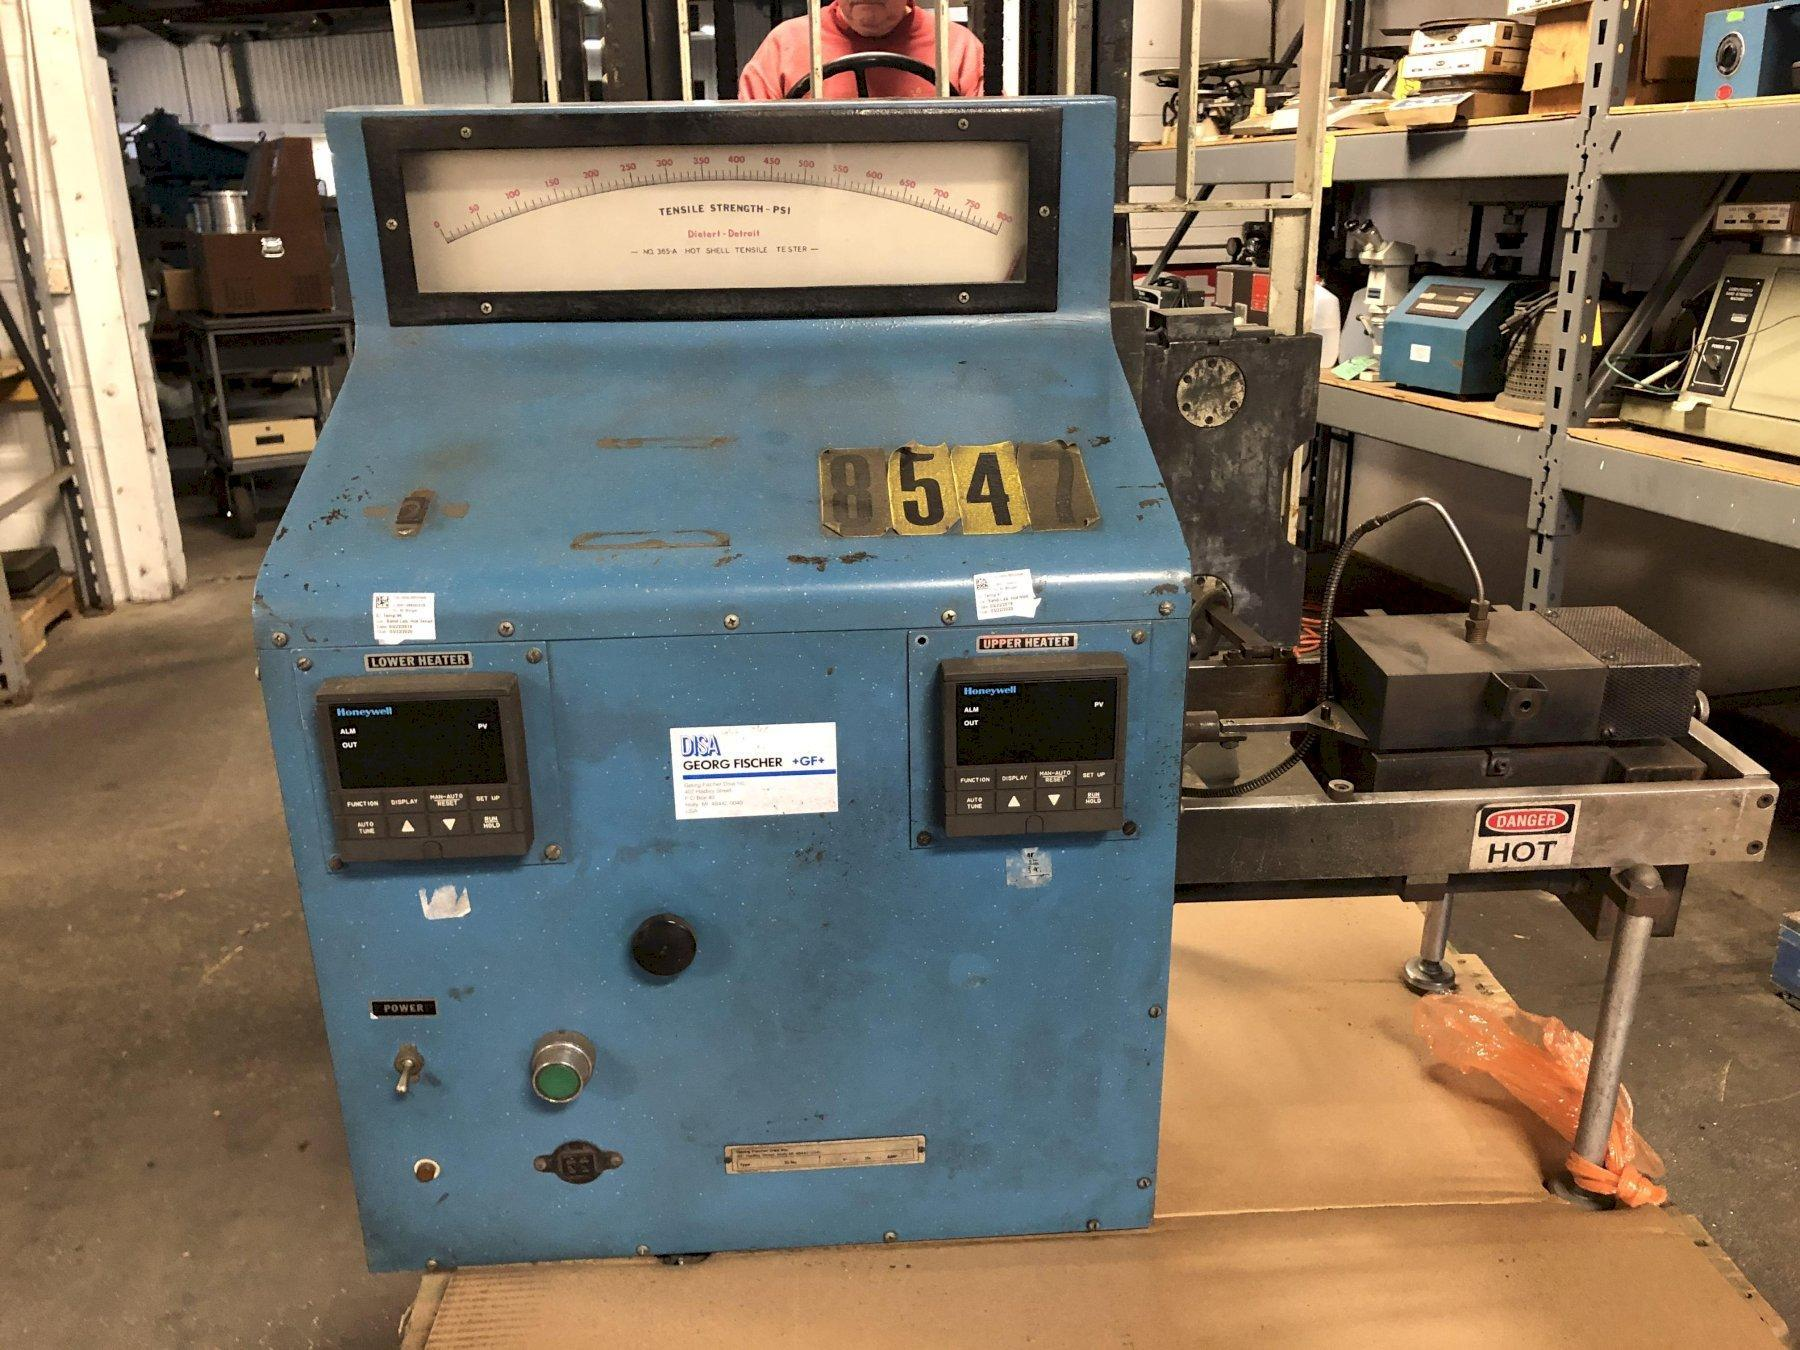 DIETERT MODEL 336A HOT TENSILE TESTER S/N 035 WITH HOENYWELL TOP AND BOTTOM DIGITAL TEMPERATURE CONTROLLERS